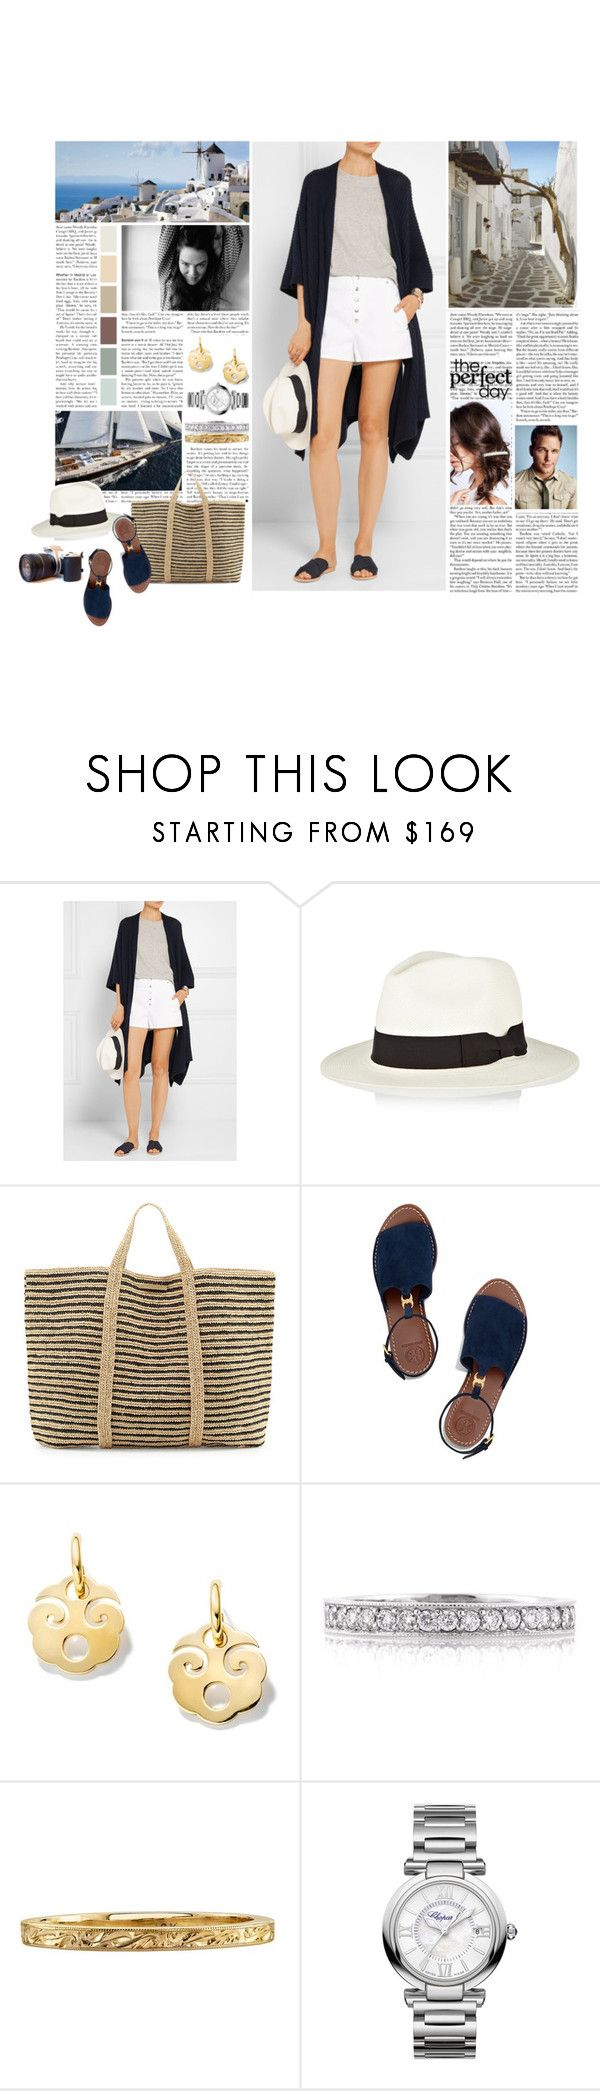 """""""Untitled #2889"""" by duchessq ❤ liked on Polyvore featuring Madeleine Thompson, Sensi Studio, ViX, Tory Burch, Mark Broumand, Chopard and Dream Collective"""